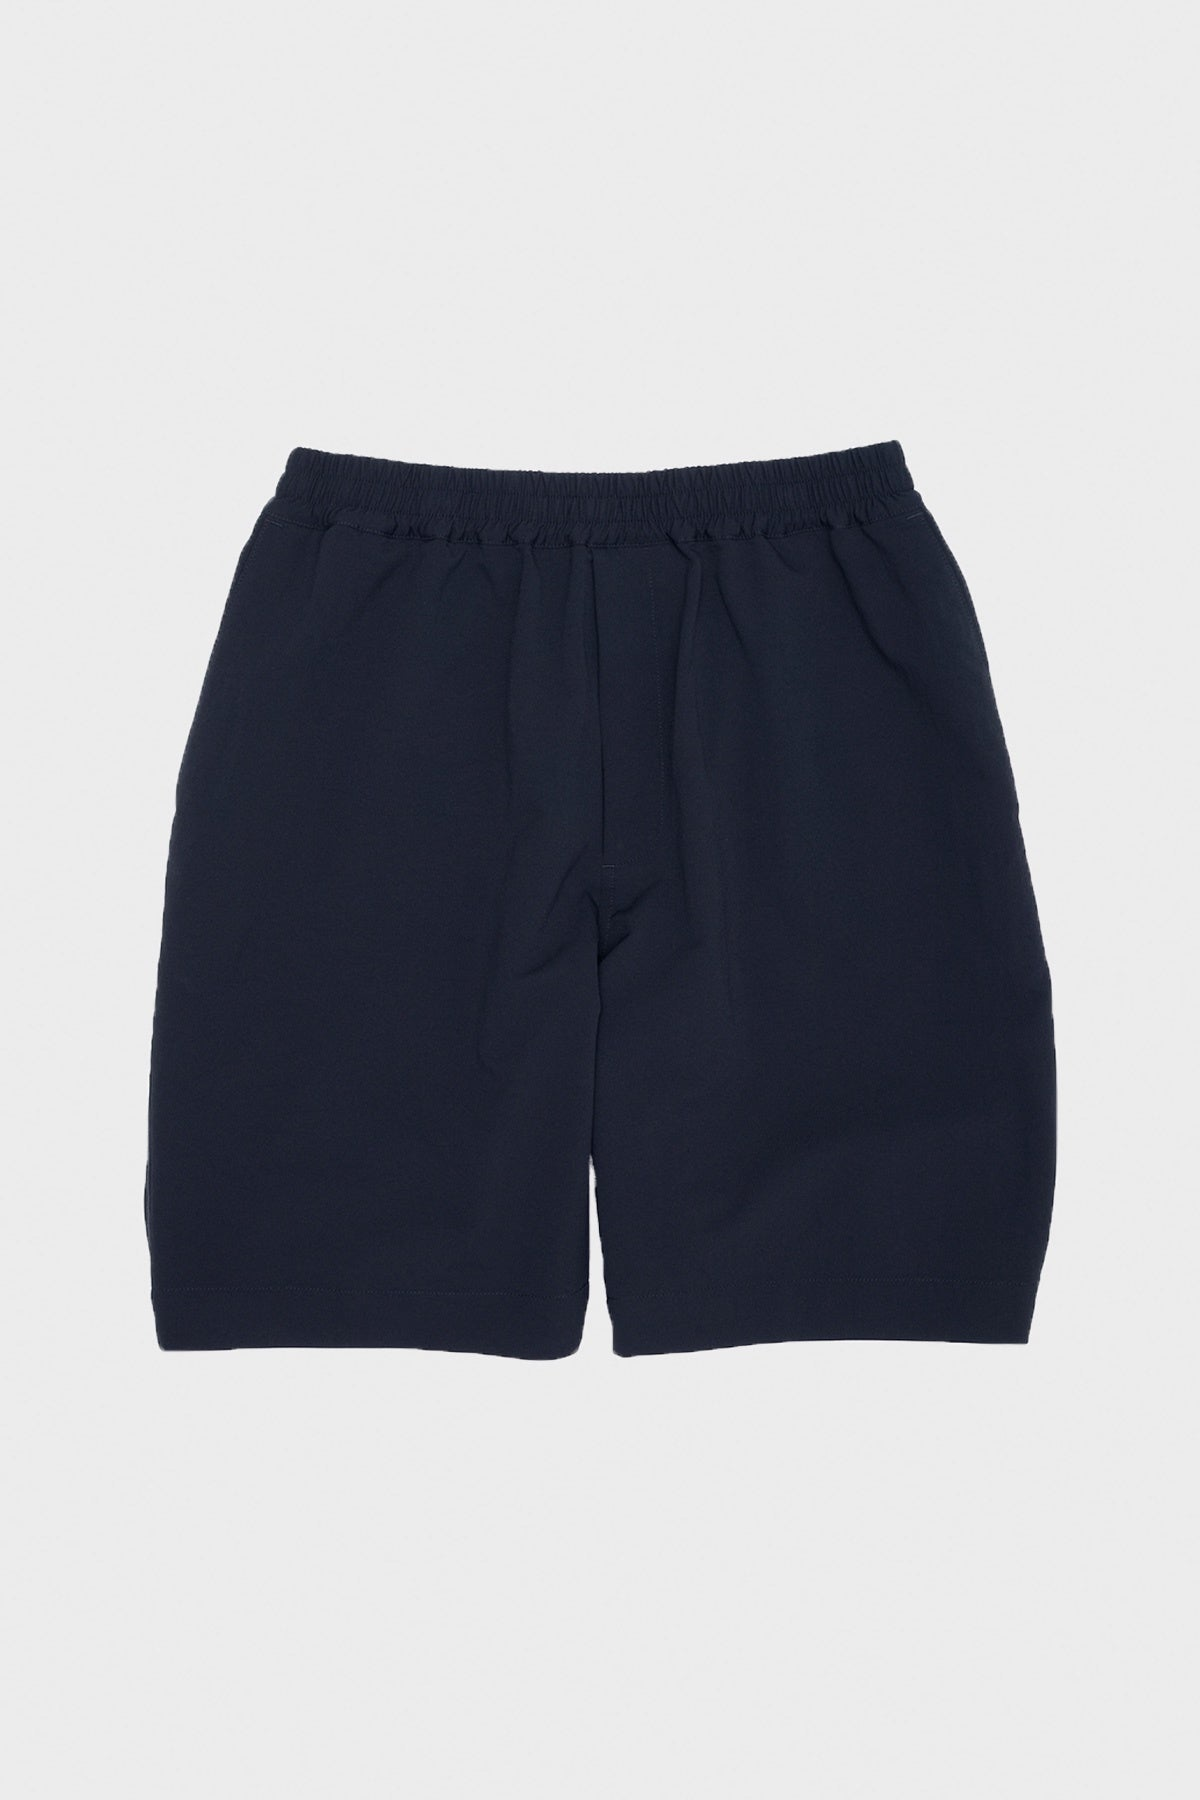 nanamica - ALPHADRY Easy Shorts - Dark Navy - Canoe Club